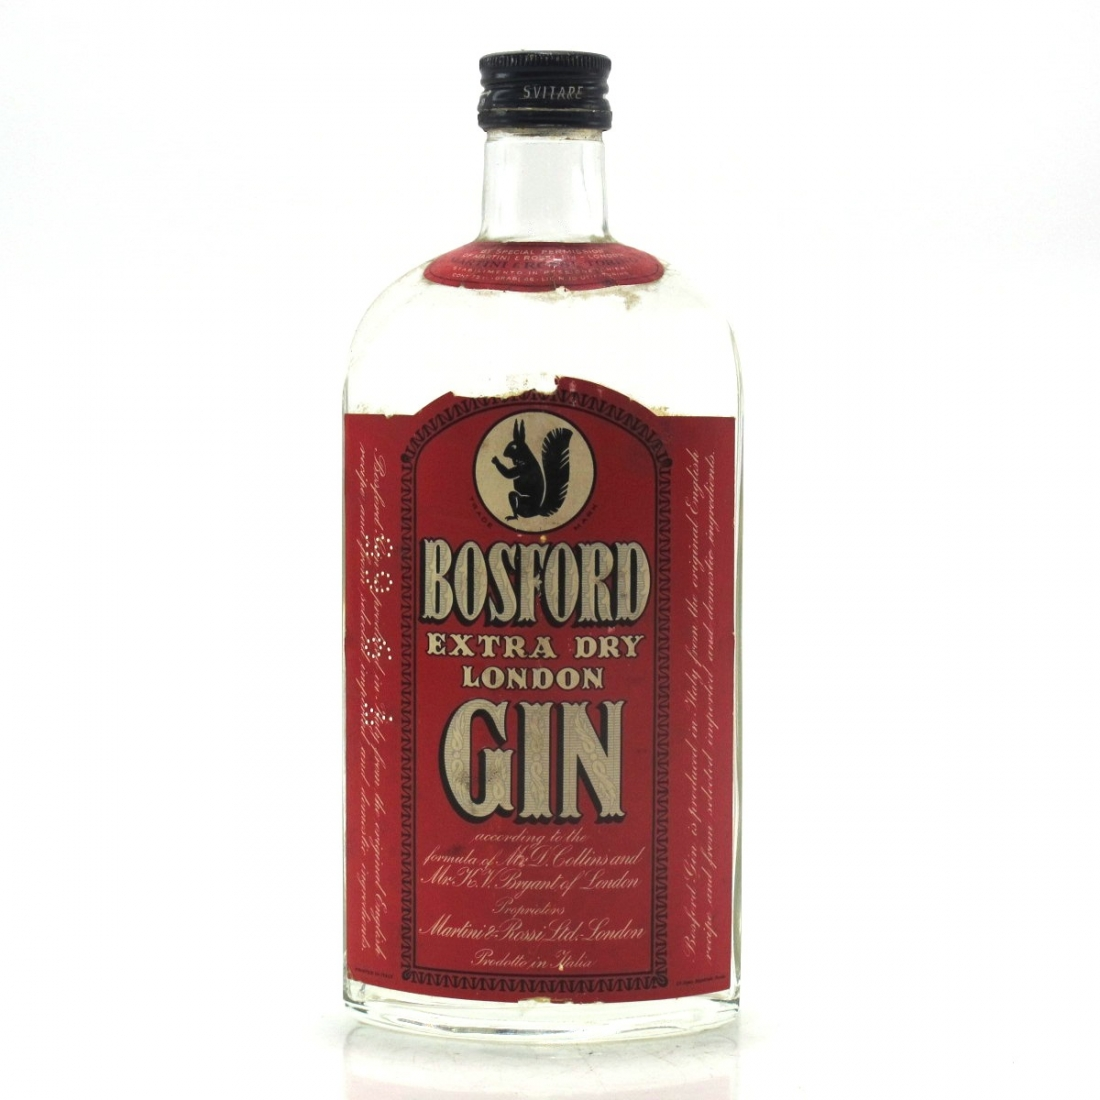 Bosford Extra Dry Gin 1960s